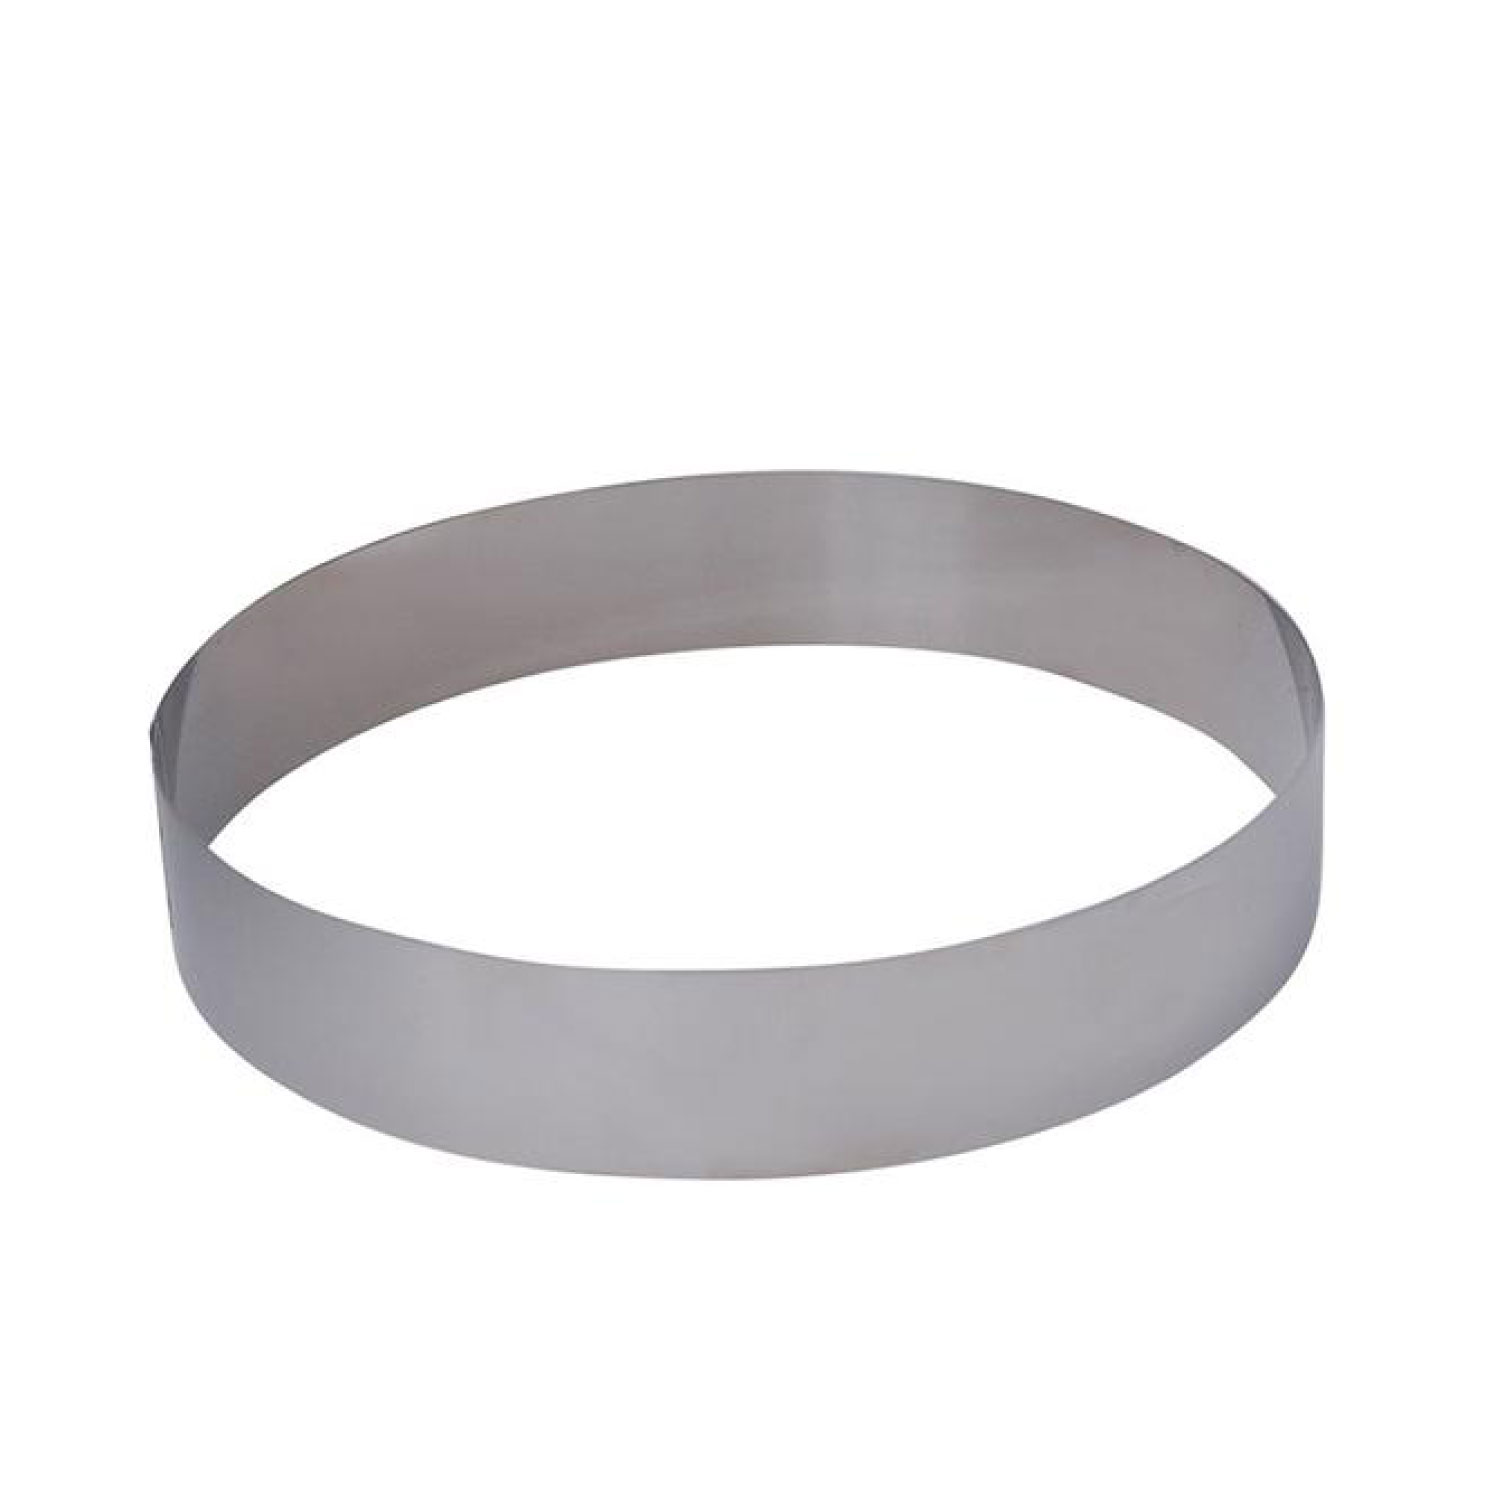 Stainless Steel Pastry Ring 20 x 4.5cm